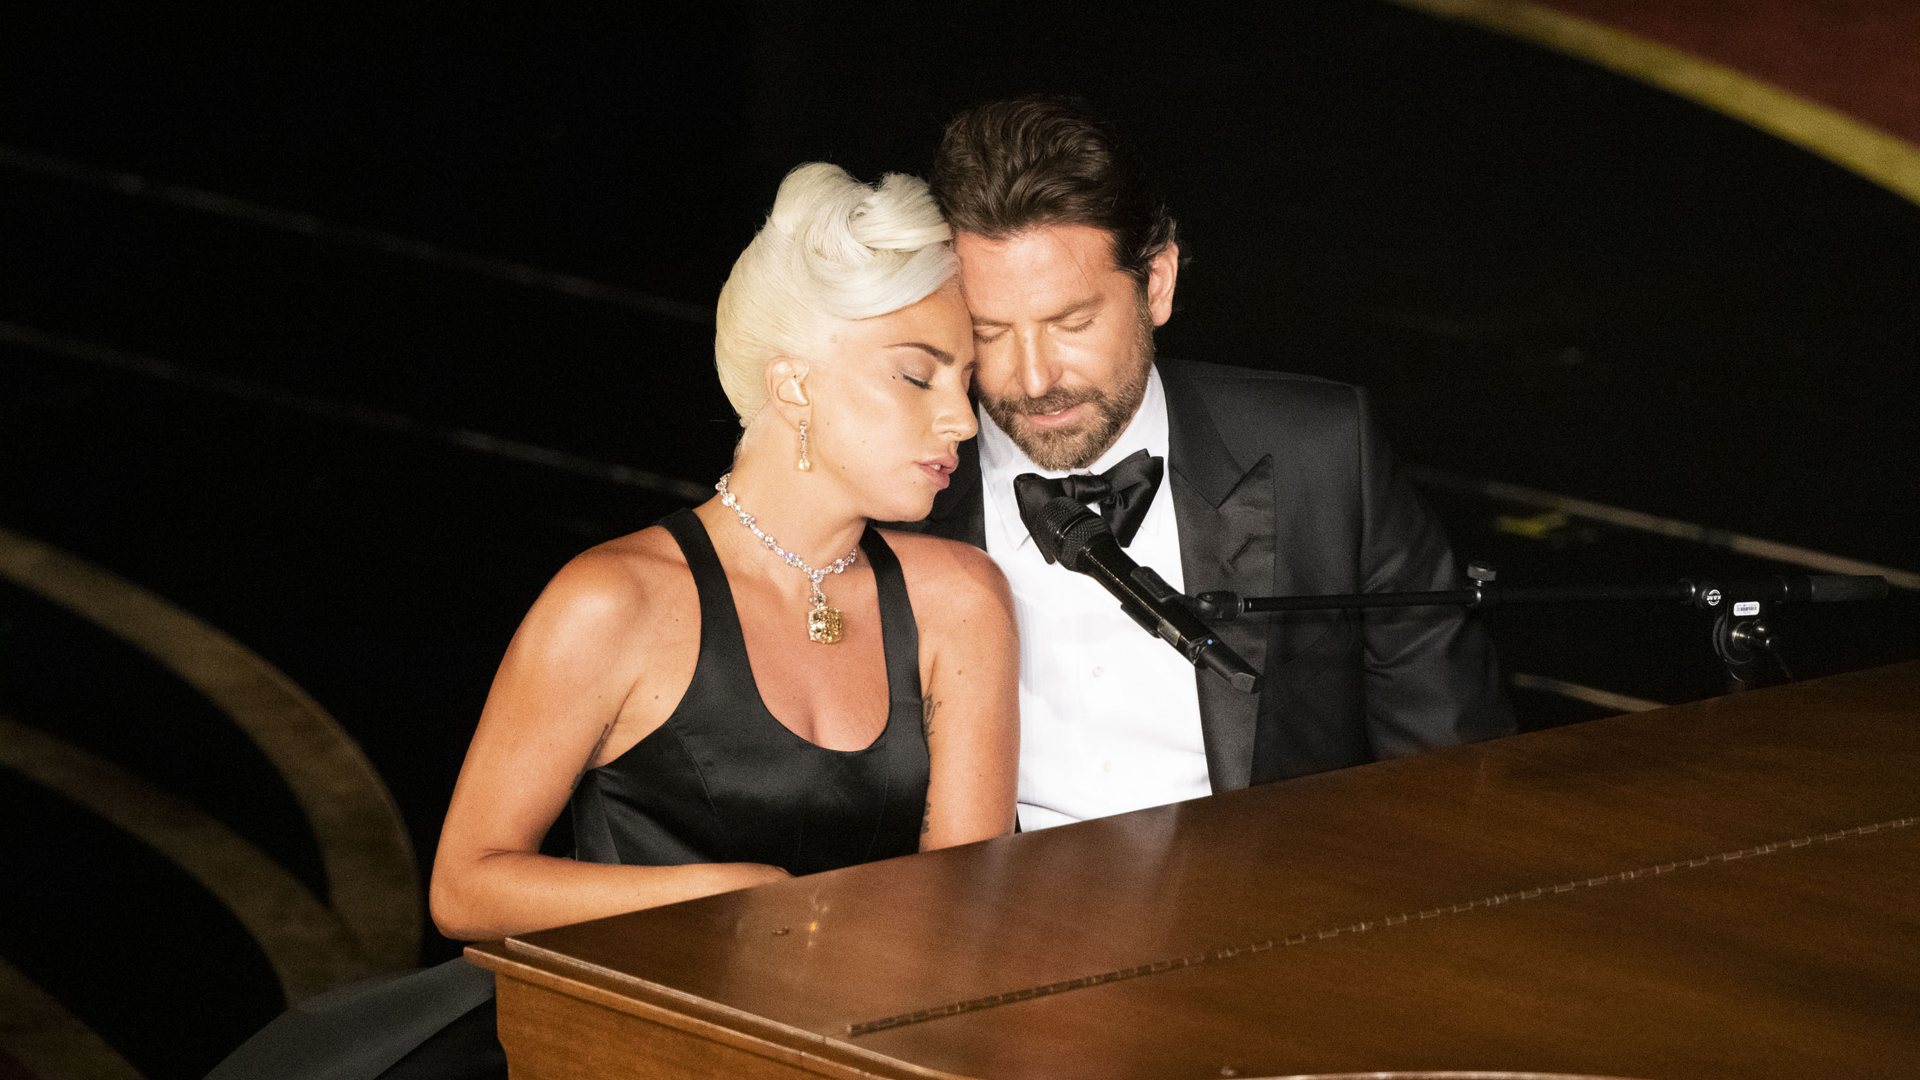 Lady Gaga and Bradley Cooper perform at the Academy Awards on Feb. 24, 2019. (Credit: Ed Herrera via Getty Images)